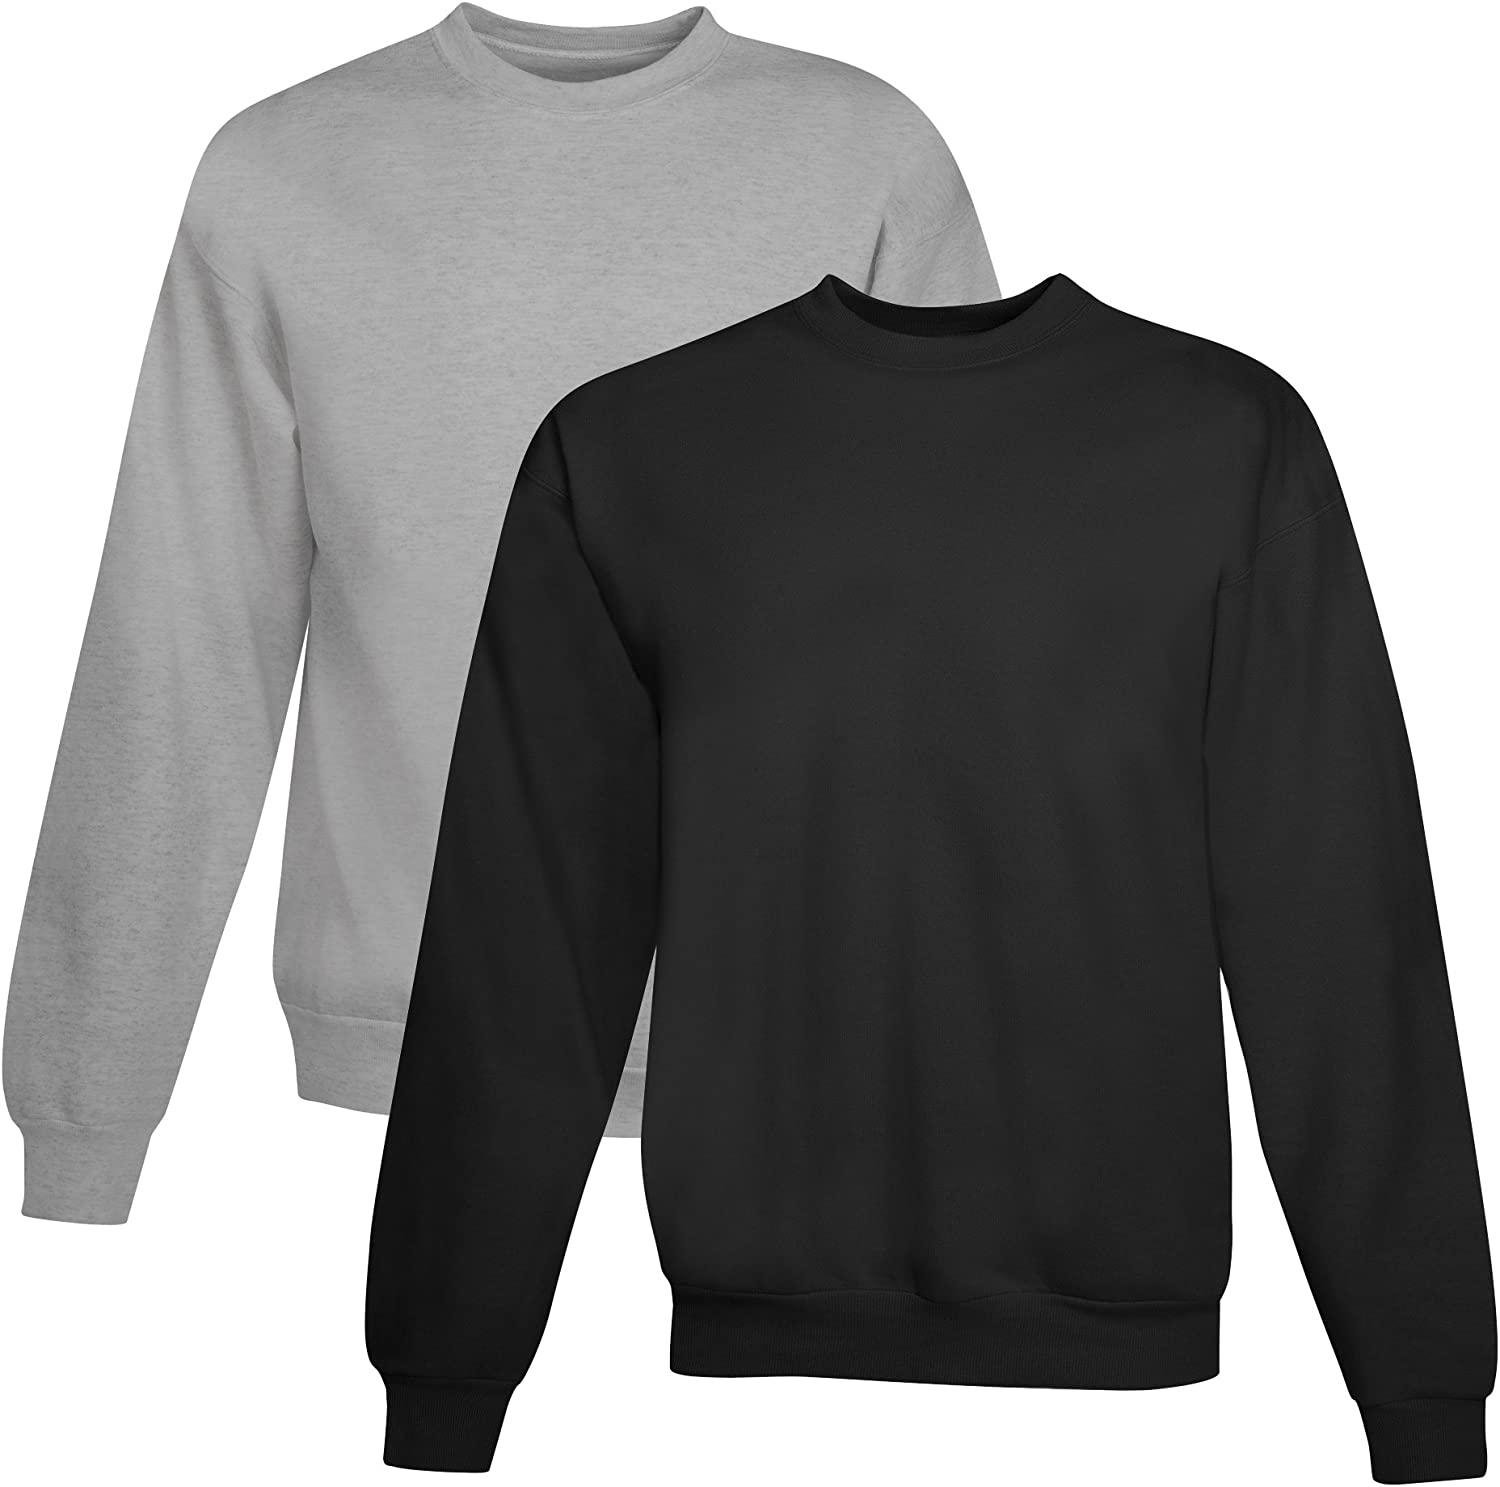 Hanes Mens EcoSmart Fleece Sweatshirt 1 Light Steel//1 Black, Pack of 2